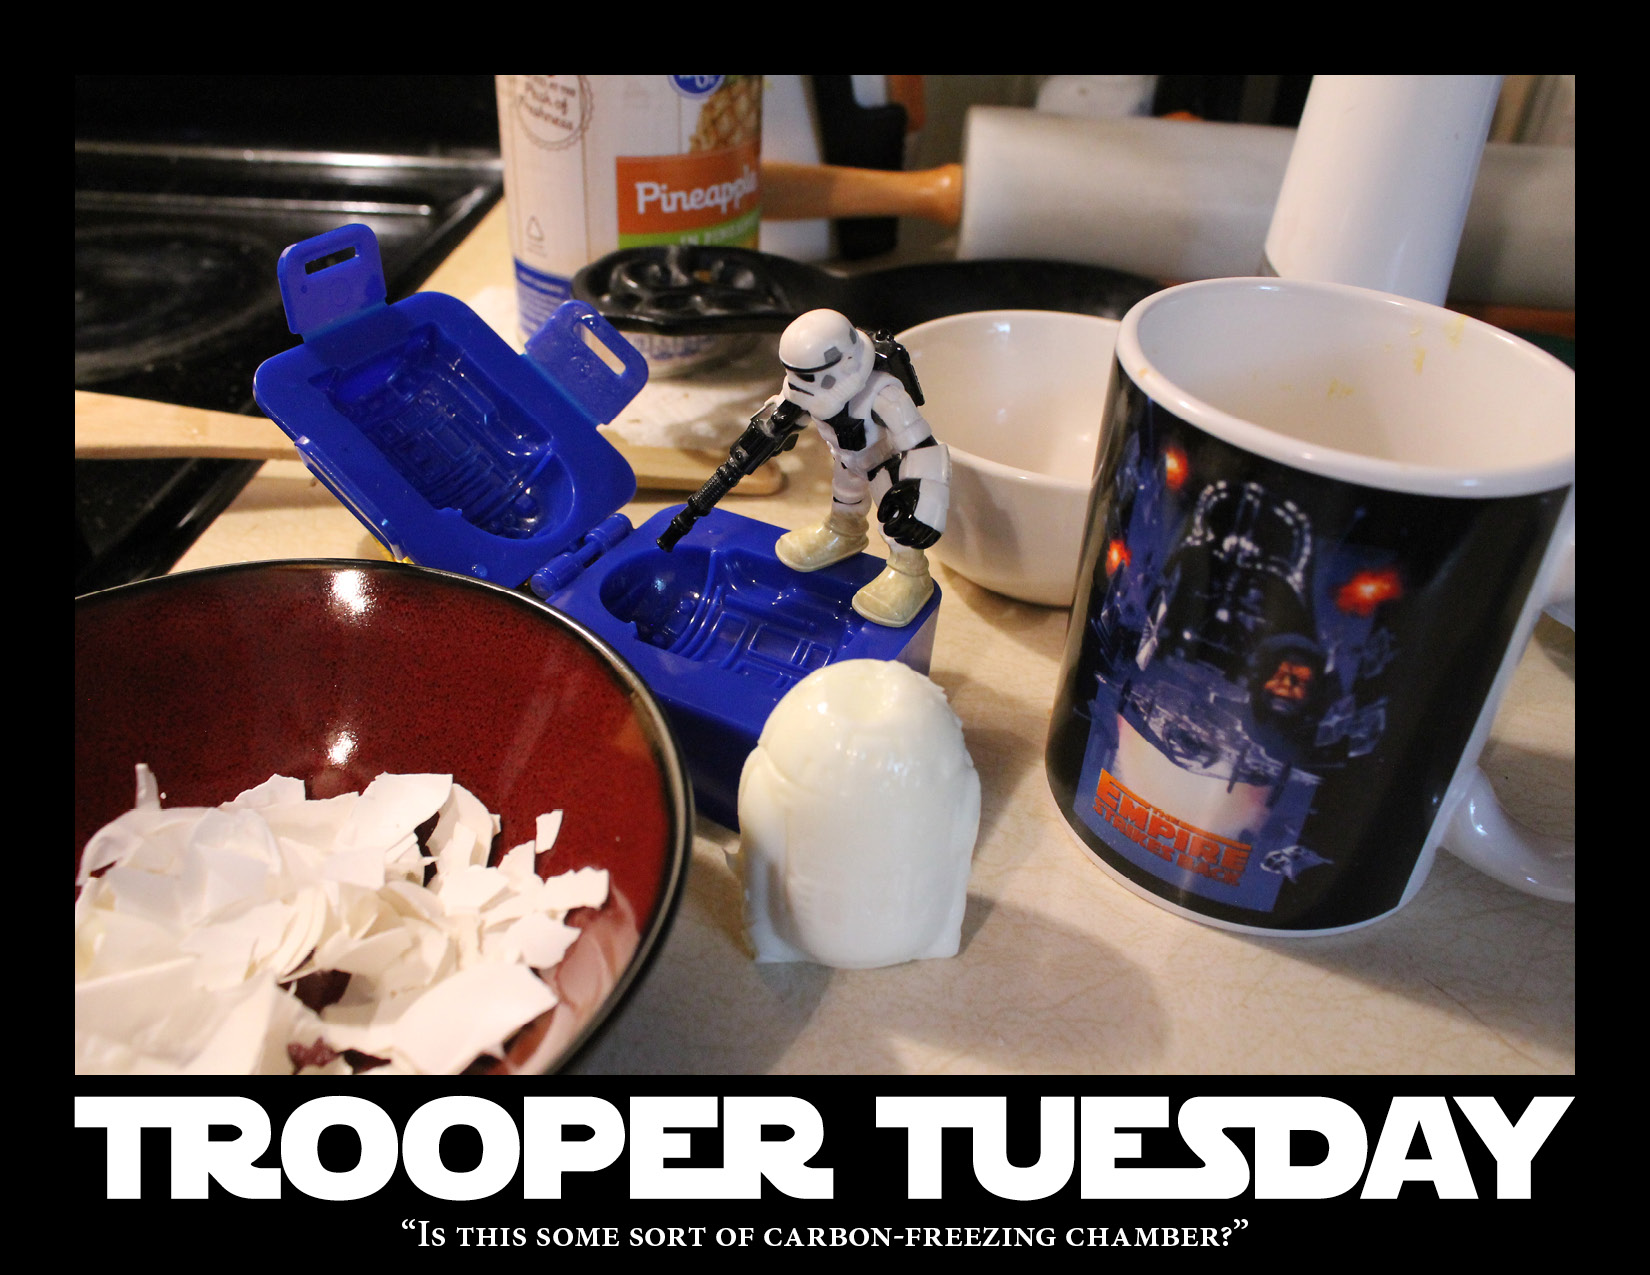 Stormtrooper examines an egg mold shaped like R2-D2.